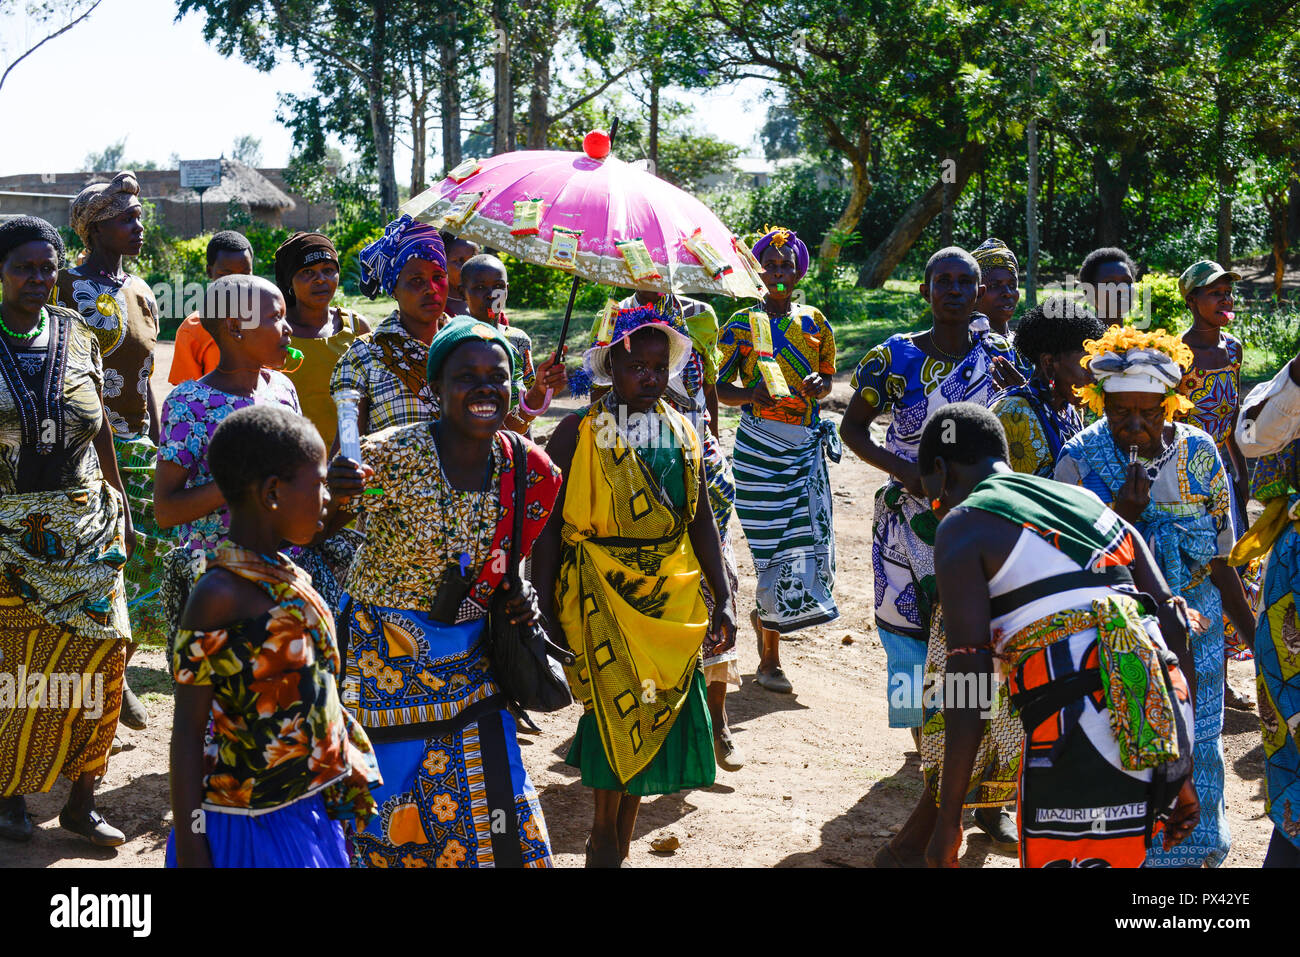 TANZANIA Mara, Tarime, village Masanga, region of the Kuria tribe who practise FGM Female Genital Mutilation, procession from cutting place during cutting season, the girl in yellow cloth under umbrella was circurmcised, published in misso magazine 5/2015 - Stock Image